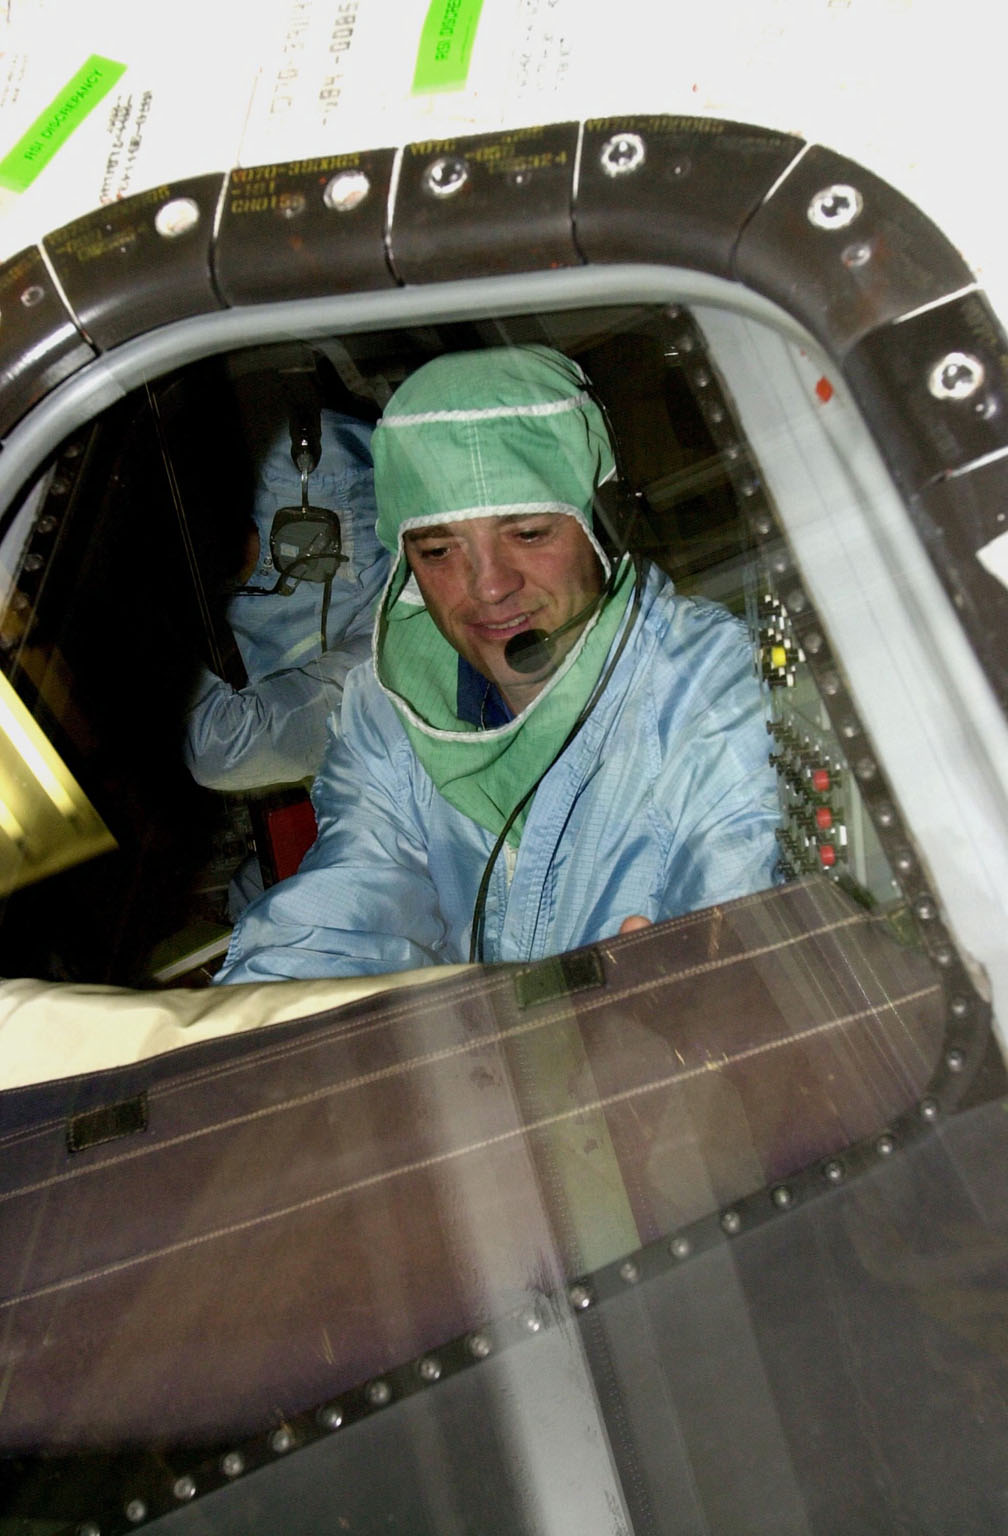 KENNEDY SPACE CENTER, FLA. -- During a Crew Equipment Interface Test, STS-112 Commander Jeffrey Ashby checks out the windshield on Atlantis, the designated orbiter for the mission. STS-112 is the 15th assembly flight to the International Space Station and will be ferrying the S1 Integrated Truss Structure. The S1 truss is the first starboard (right-side) truss segment, whose main job is providing structural support for the radiator panels that cool the Space Station's complex power system. The S1 truss segment also will house communications systems, external experiment positions and other subsystems. The S1 truss will be attached to the S0 truss. STS-112 is currently scheduled for launch Aug. 22, 2002